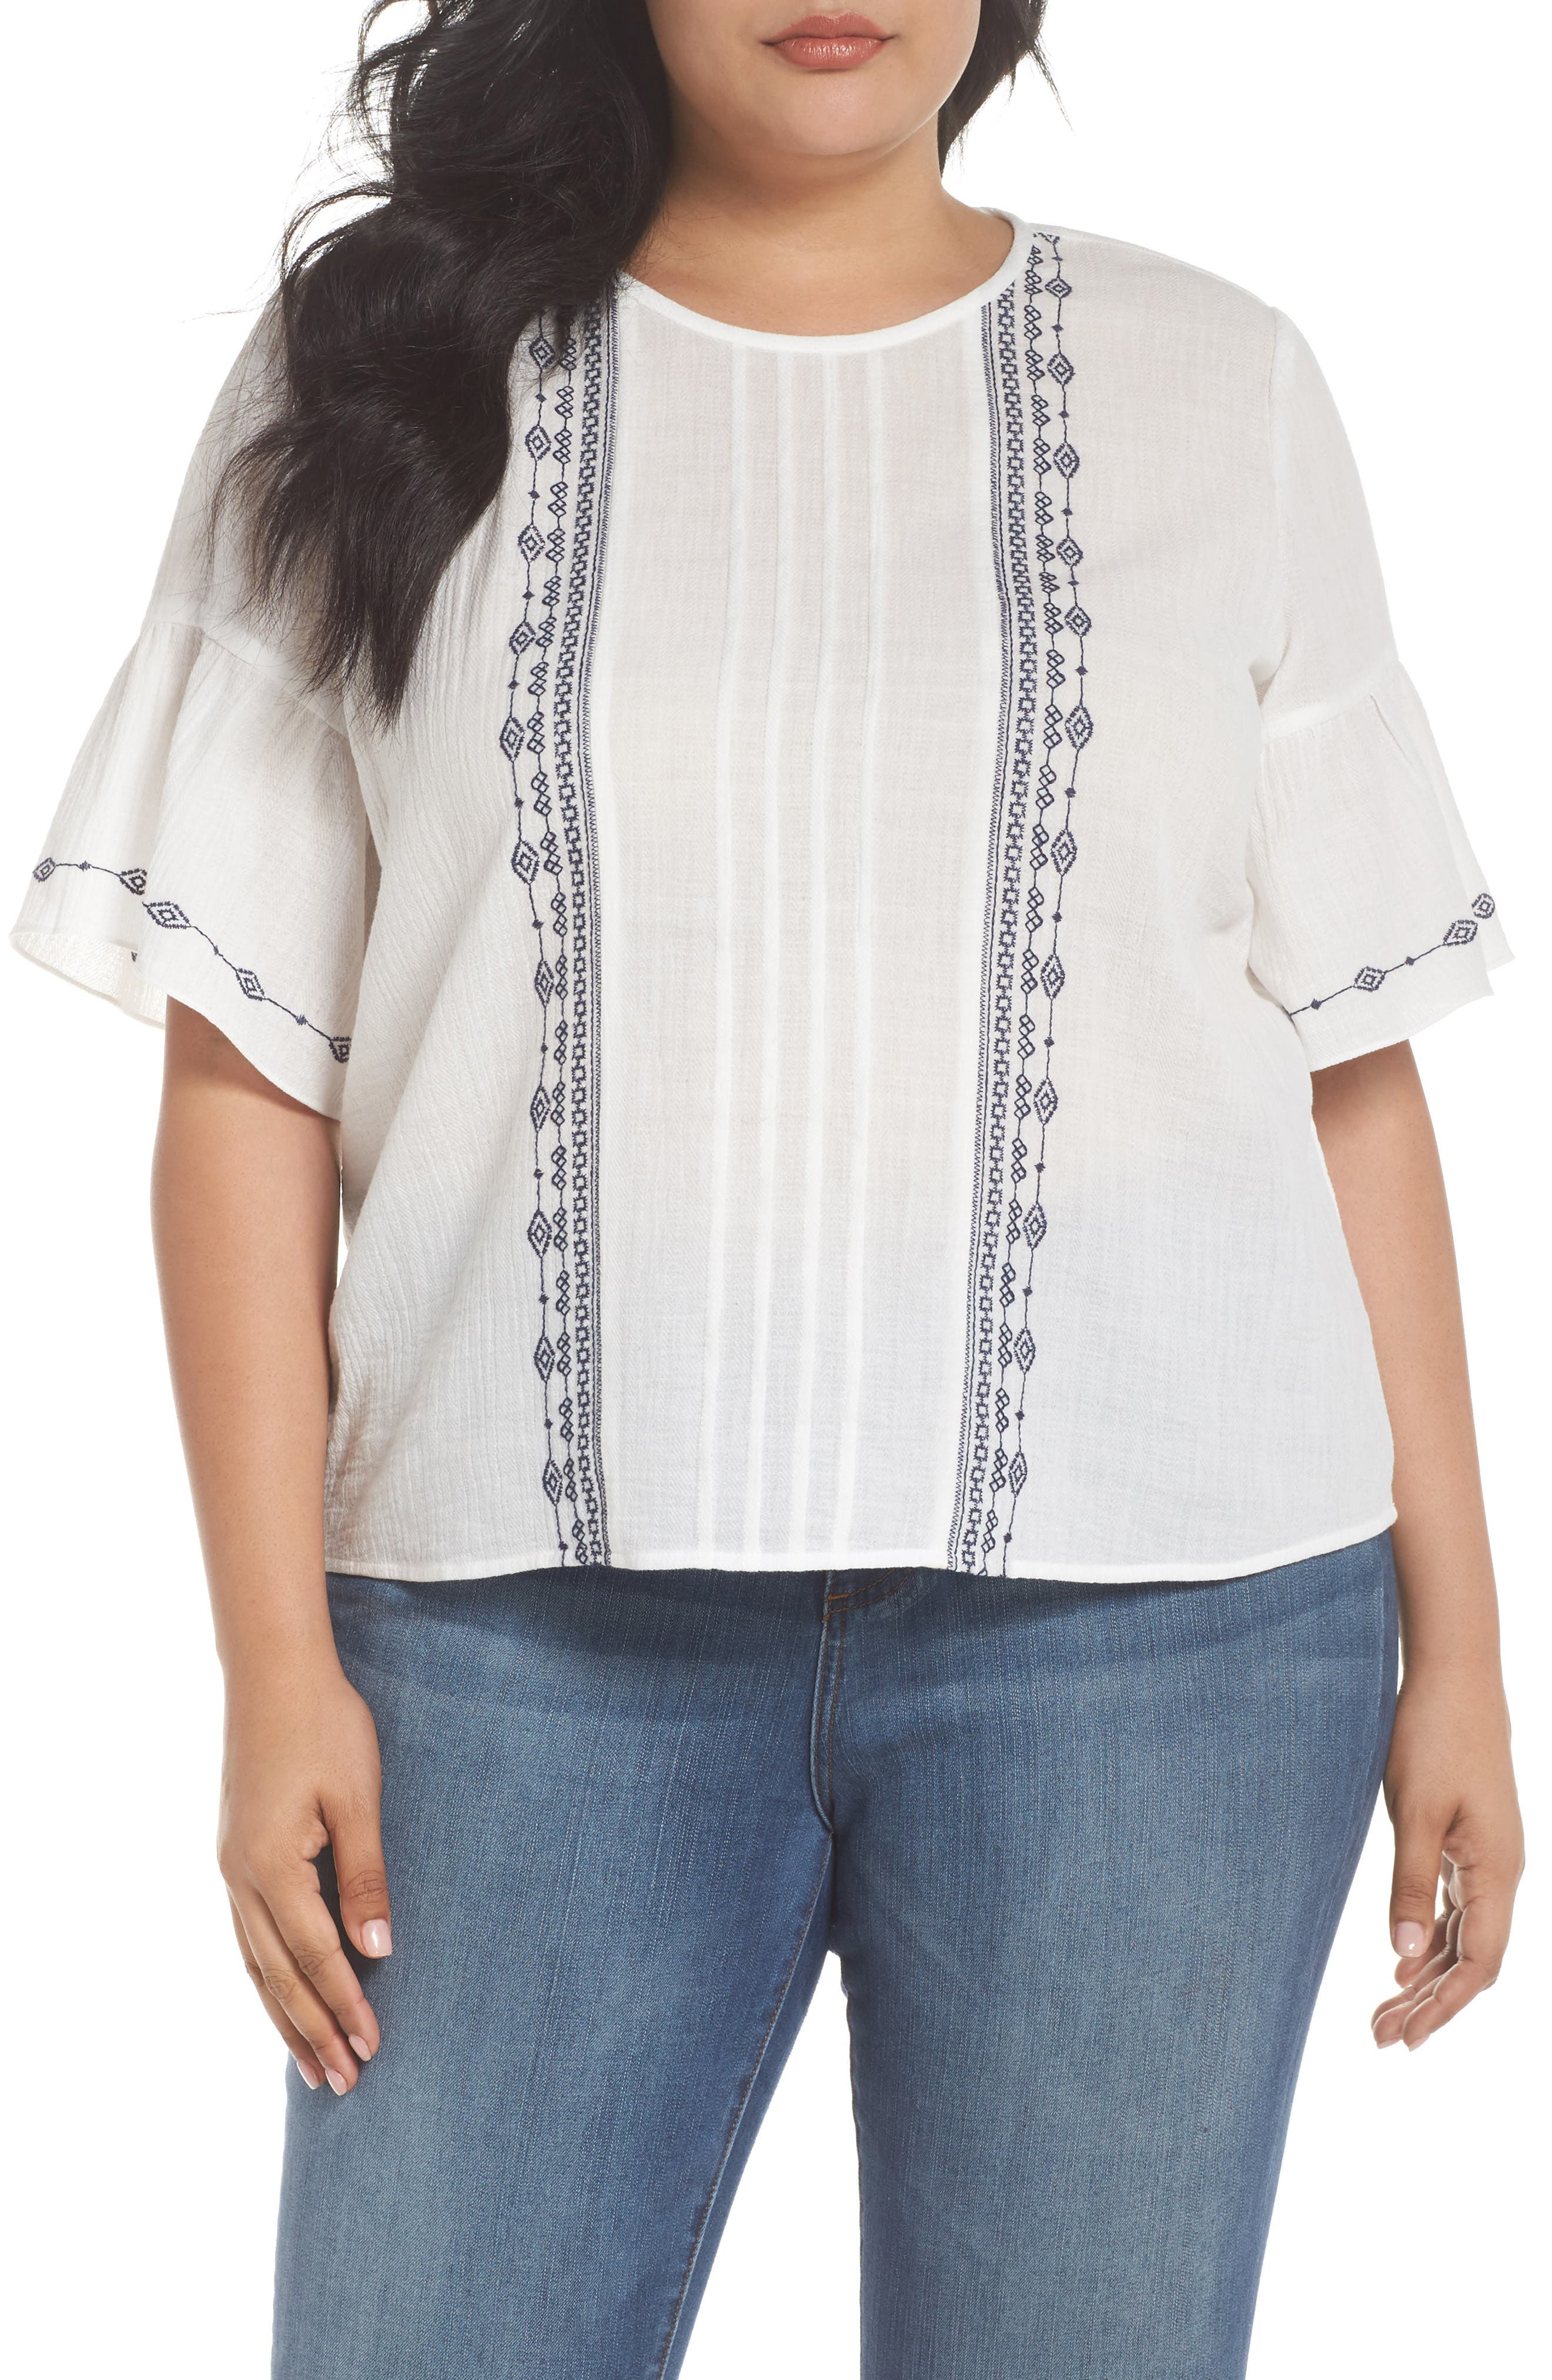 Ruffle Sleeve Embroidered Crinkle Cotton Top,                         Main,                         color, ULTRA WHIT